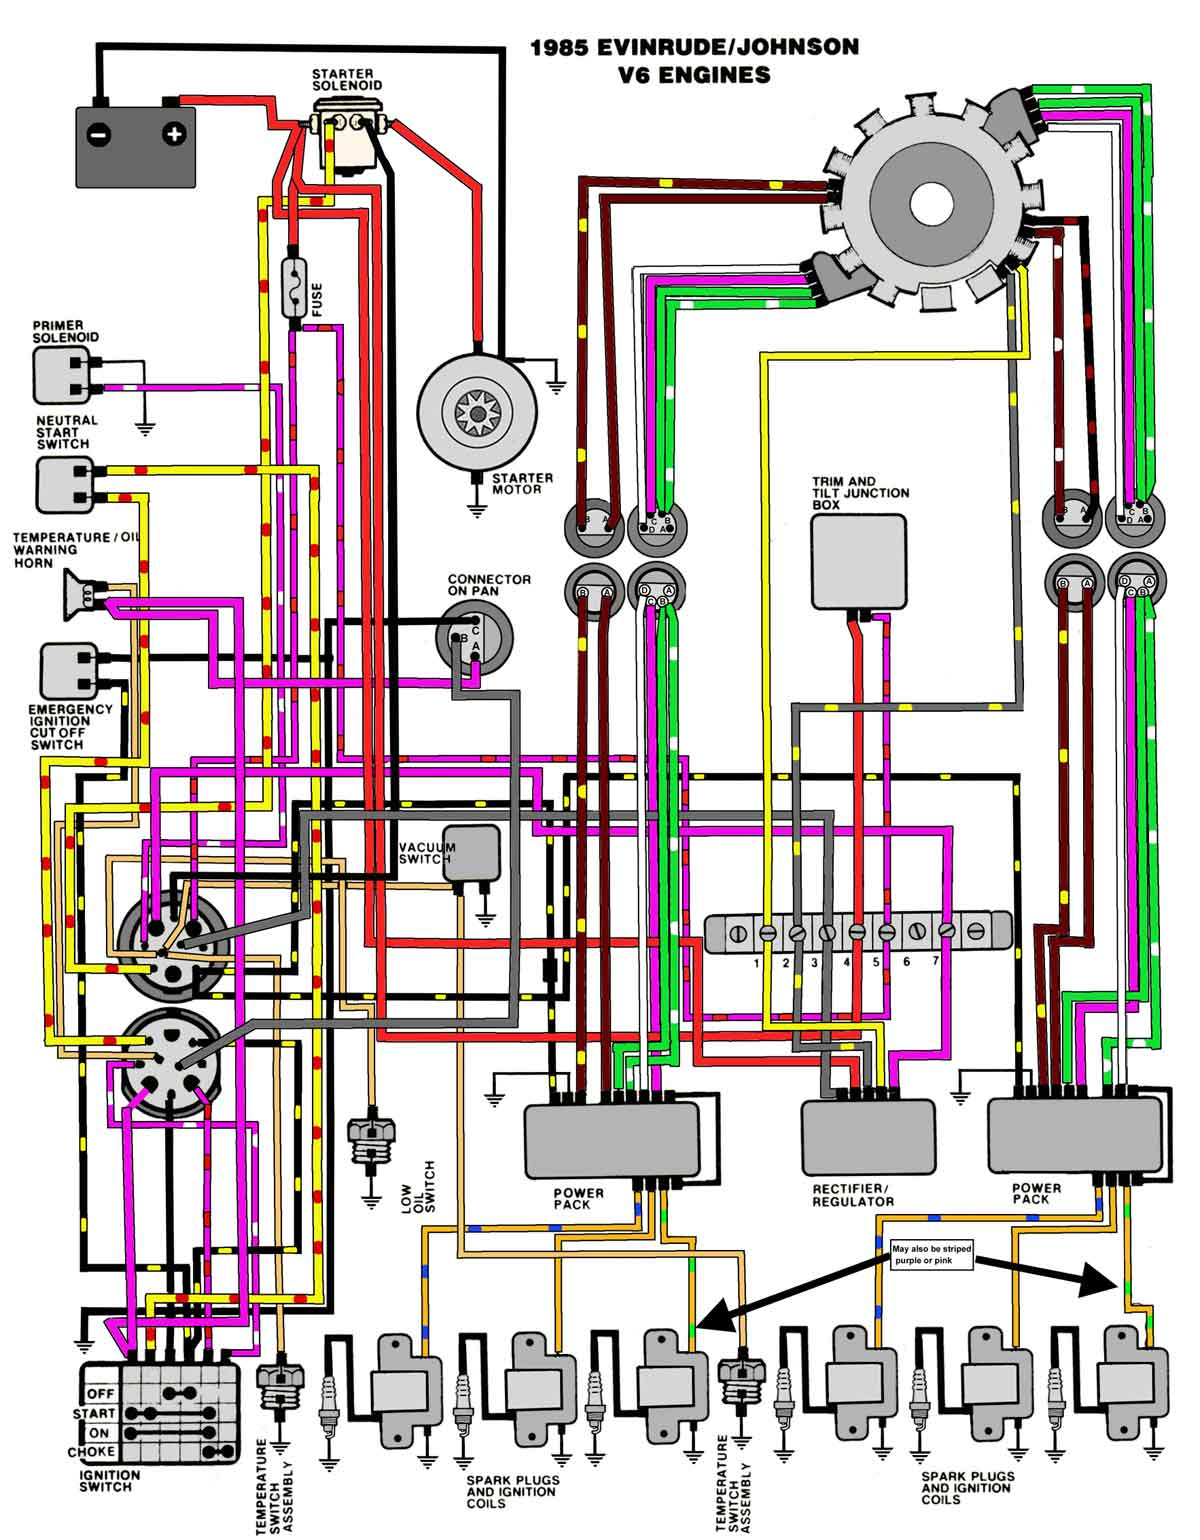 evinrude johnson outboard wiring diagrams mastertech 48 Hp Evinrude Wiring Diagram ignition switch wiring diagrams page 1